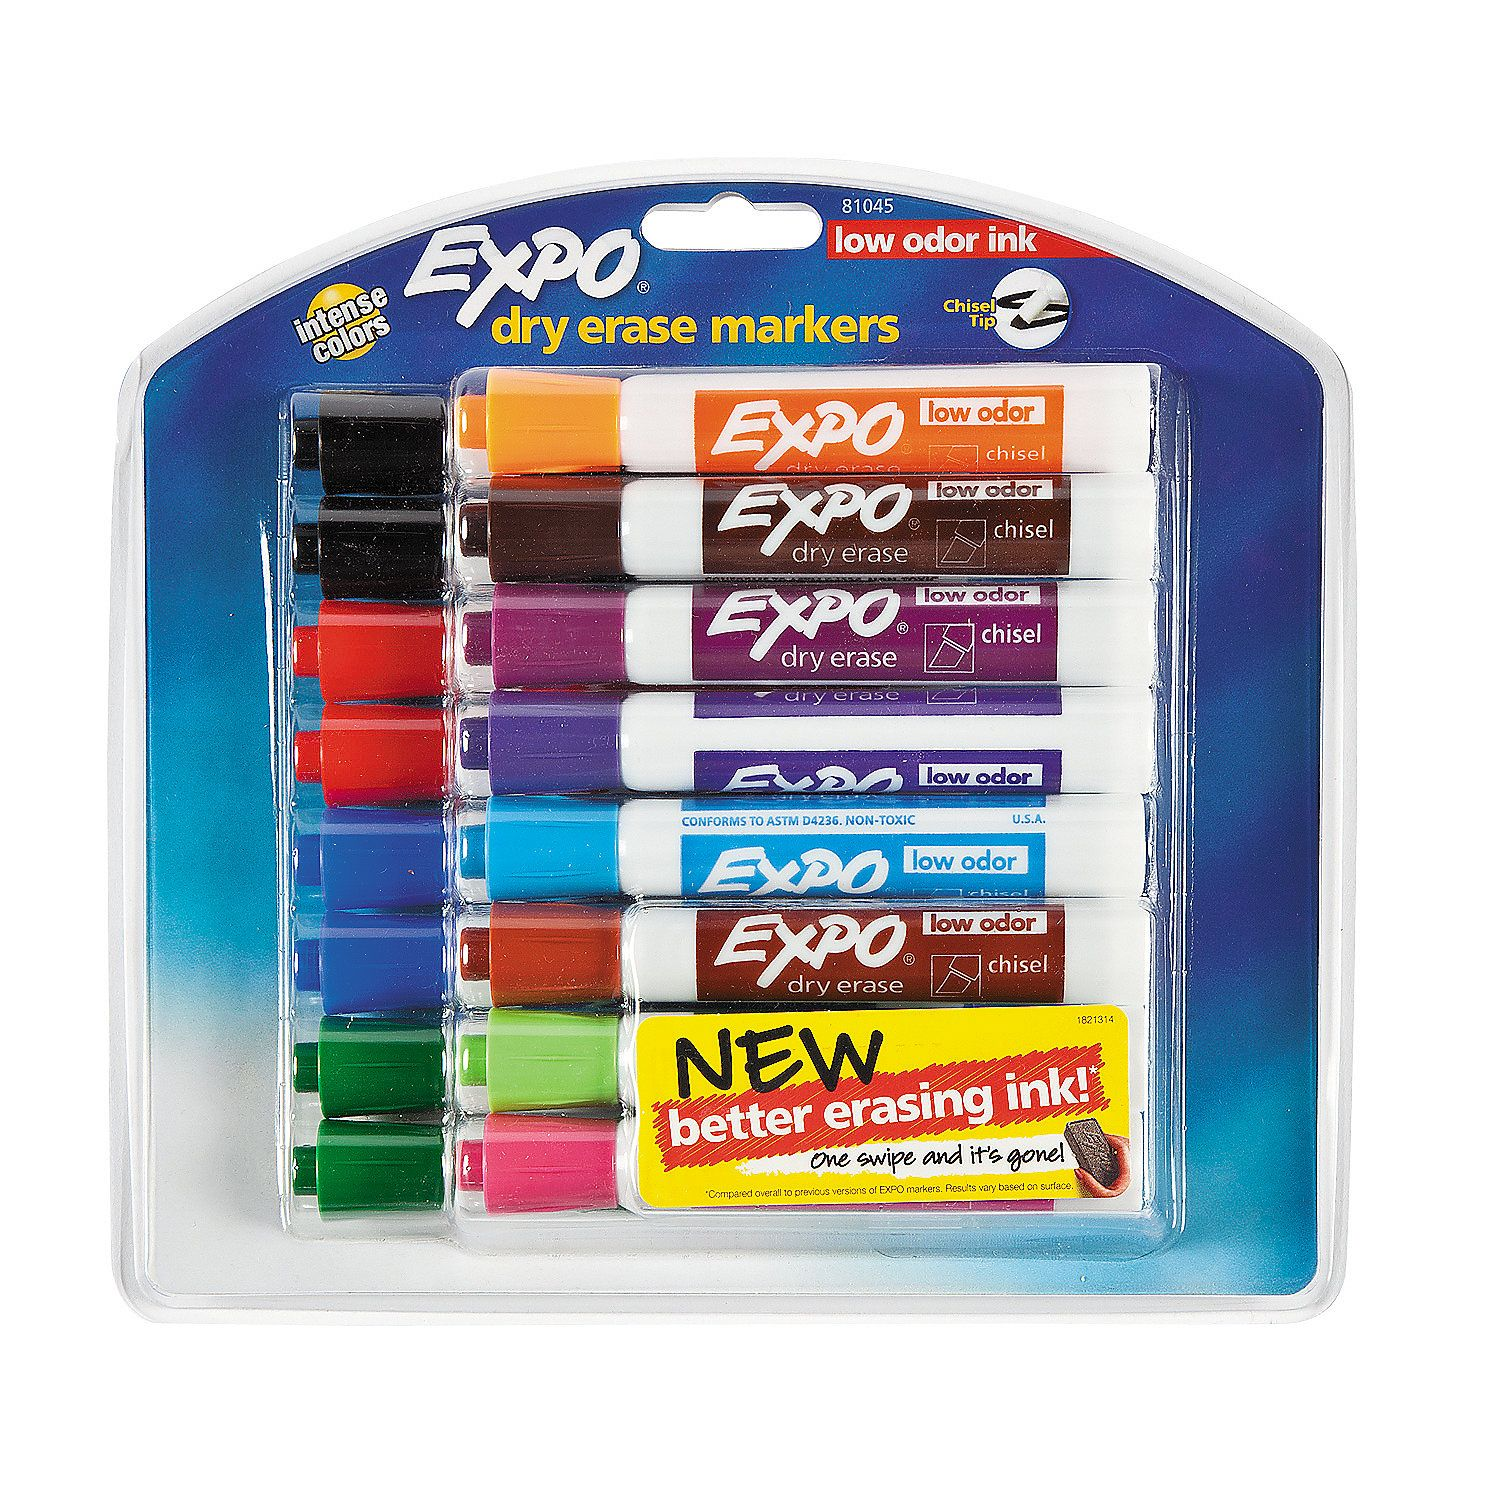 16 Color Expo Washable Low Odor Dry Erase Markers Dry Erase Markers Markers Oriental Trading